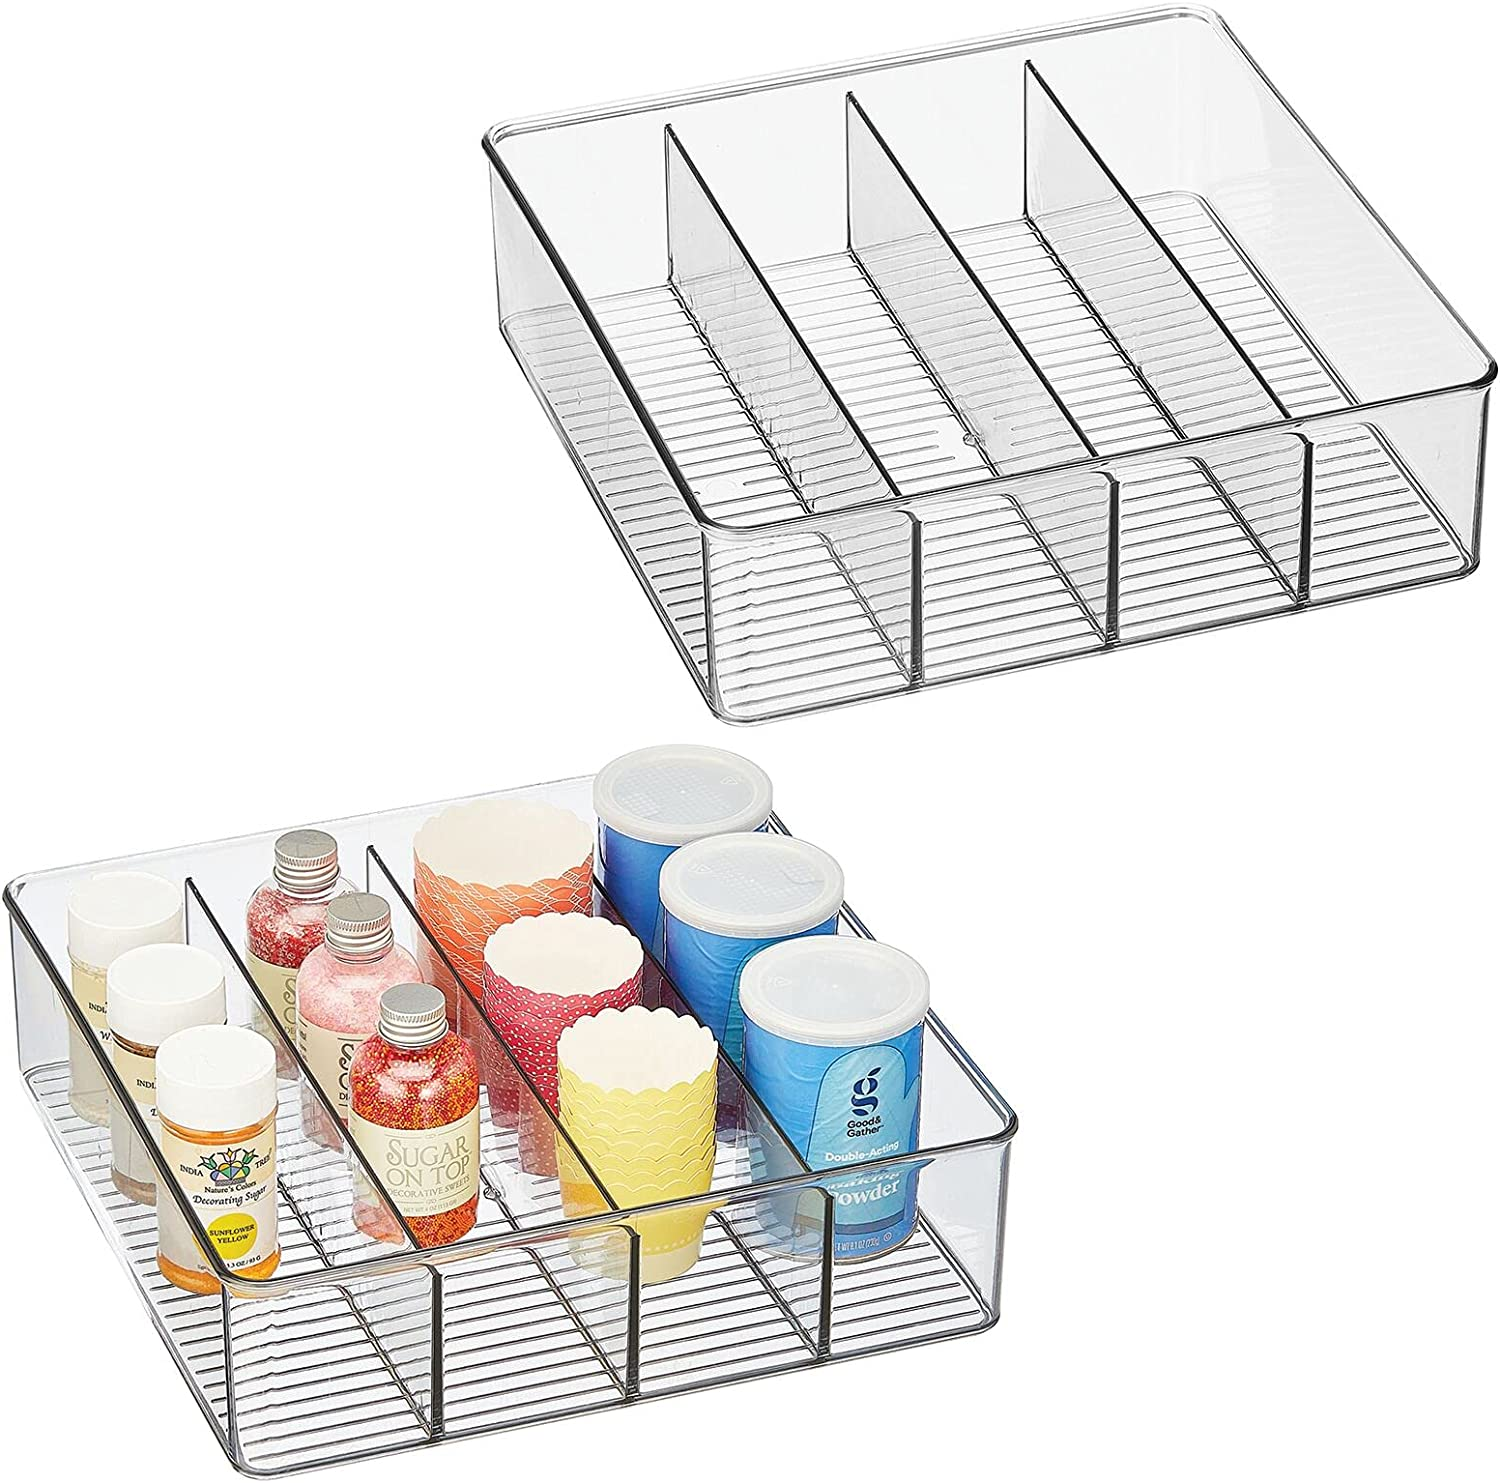 Beauty products mDesign Plastic Kitchen Pantry Storage Organizer - Popular shop is the lowest price challenge Div Box 4 Bin